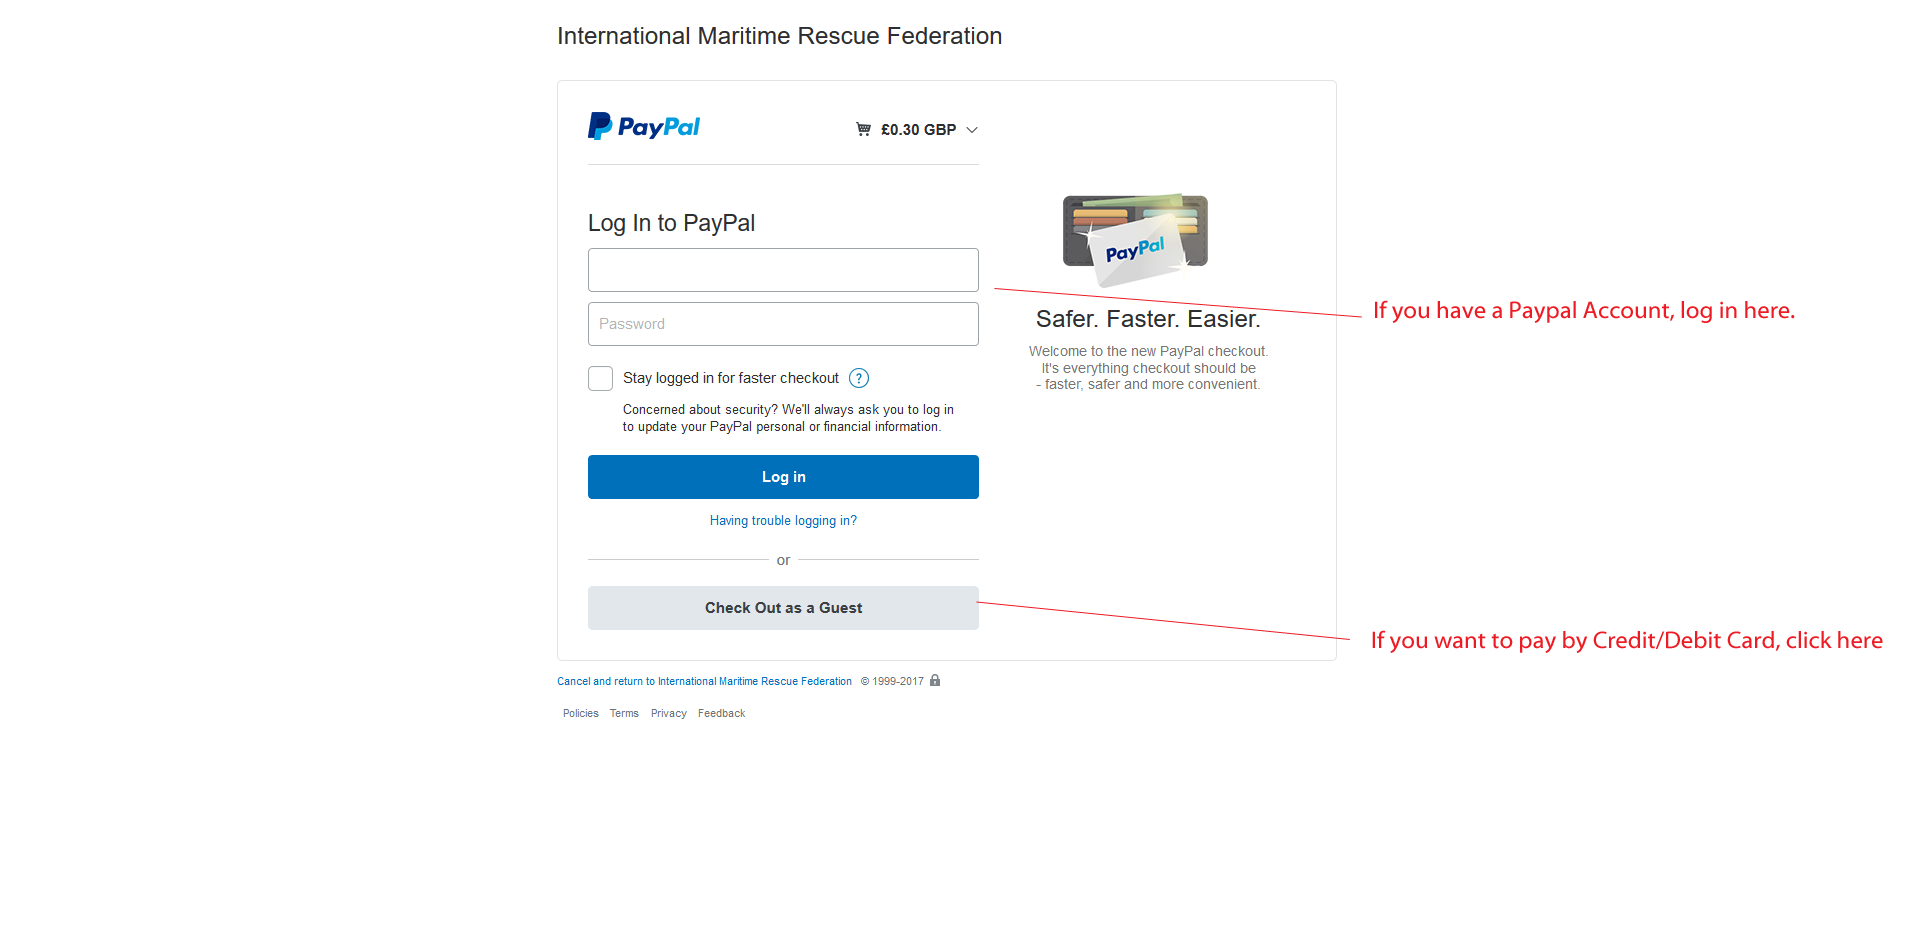 PayPal You can pay by Credit Card